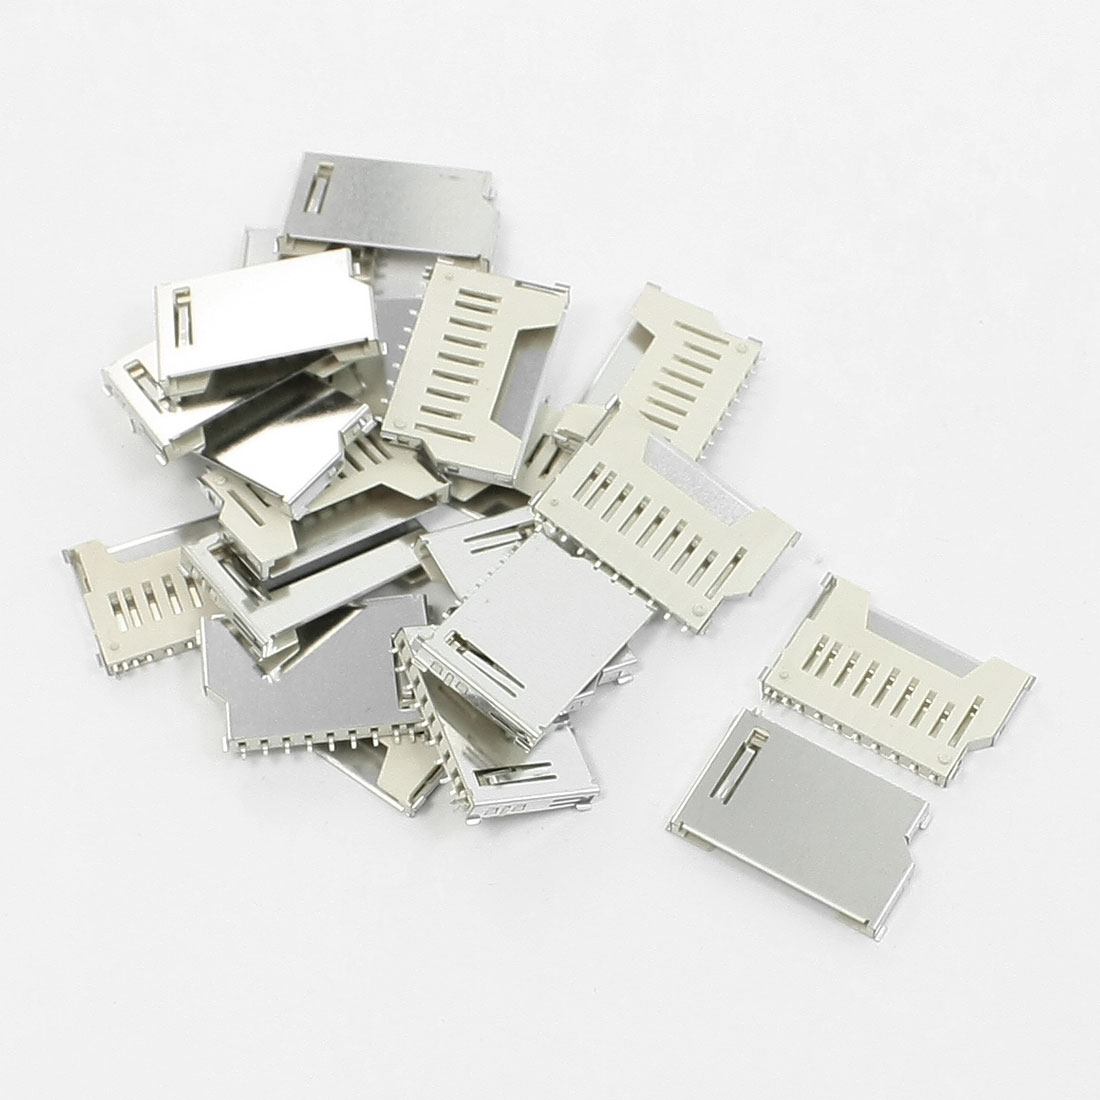 20Pcs SD Card Sockets Connectors DIY Replacement Parts 16mm x 26mm